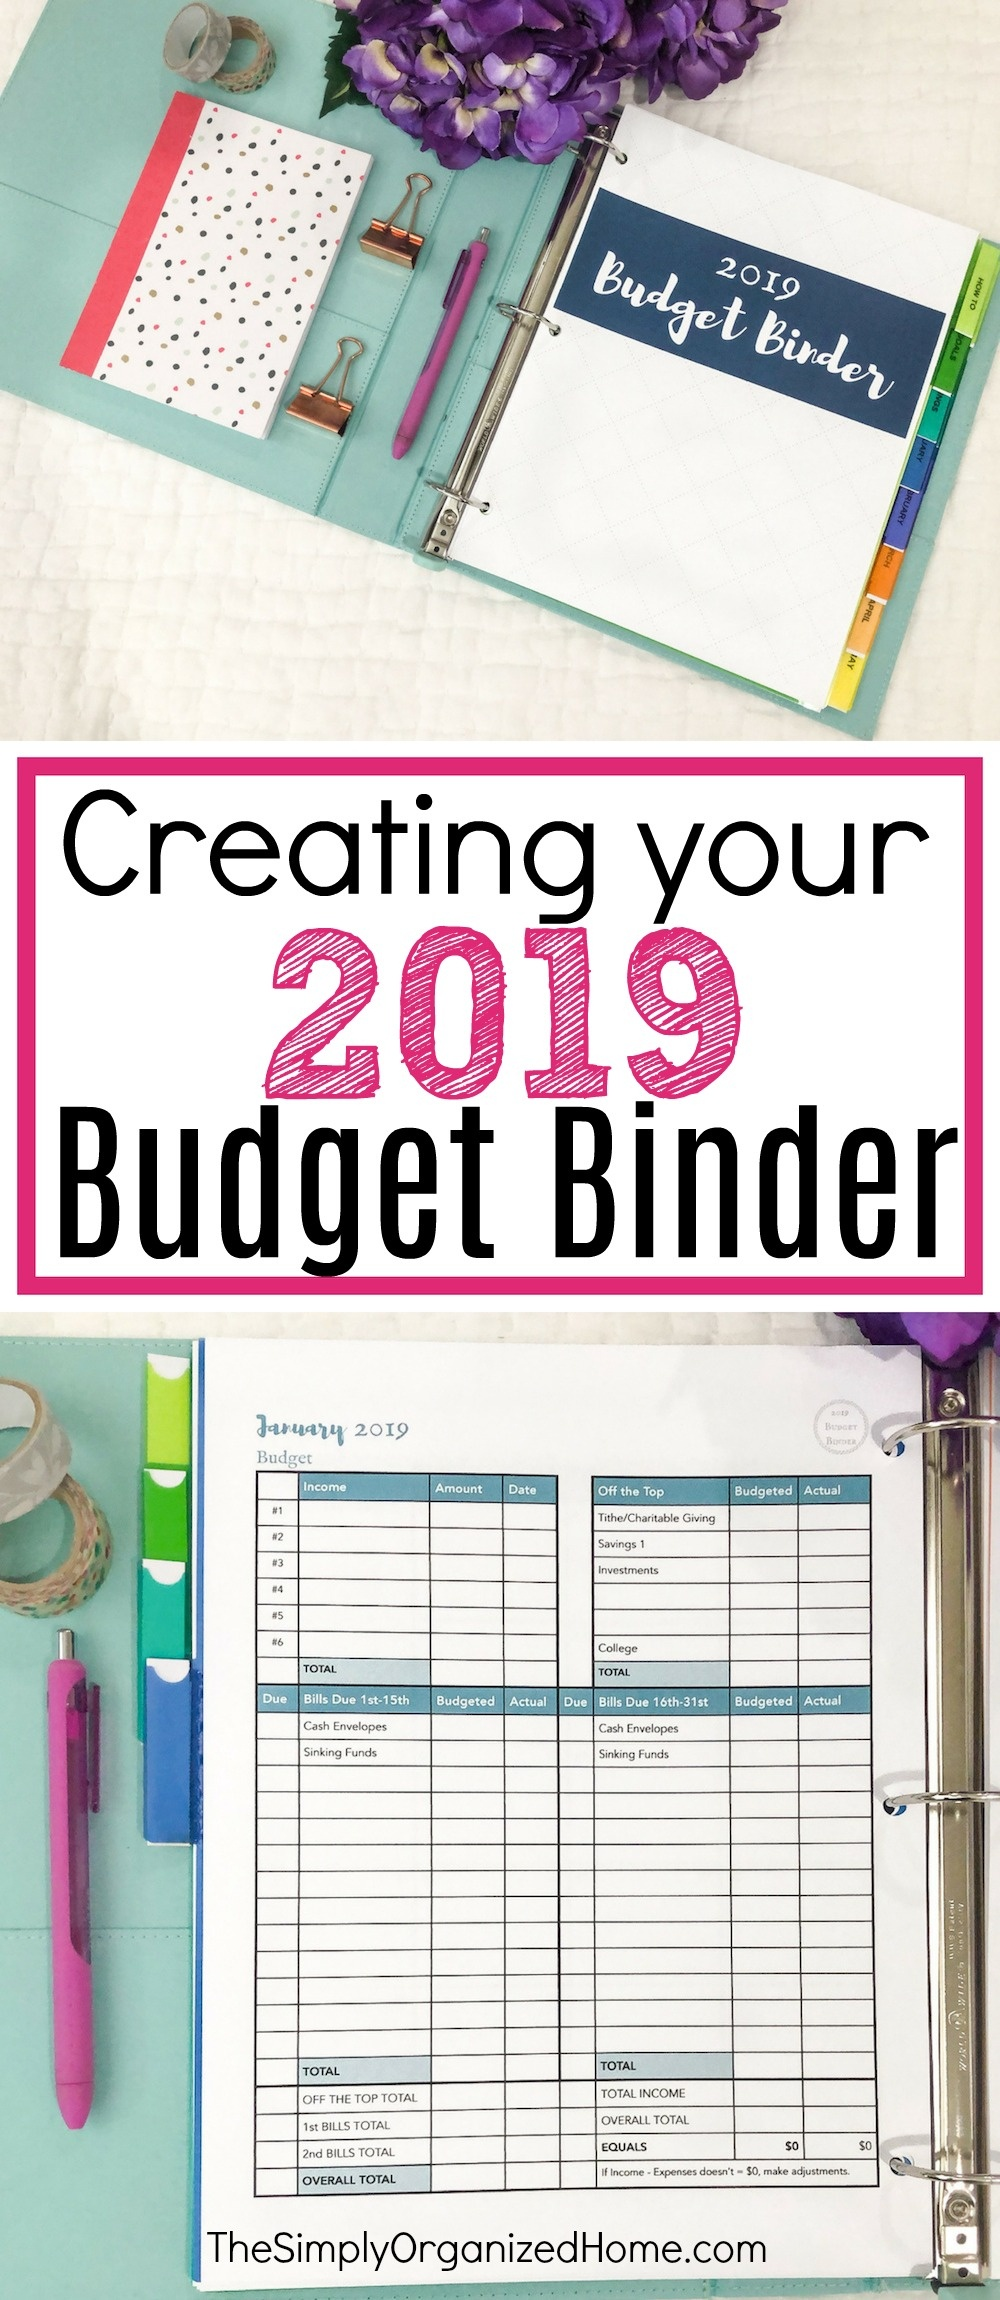 Creating Your 2019 Budget Binder - The Simply Organized Home - Budget Binder Printables 2018 Free